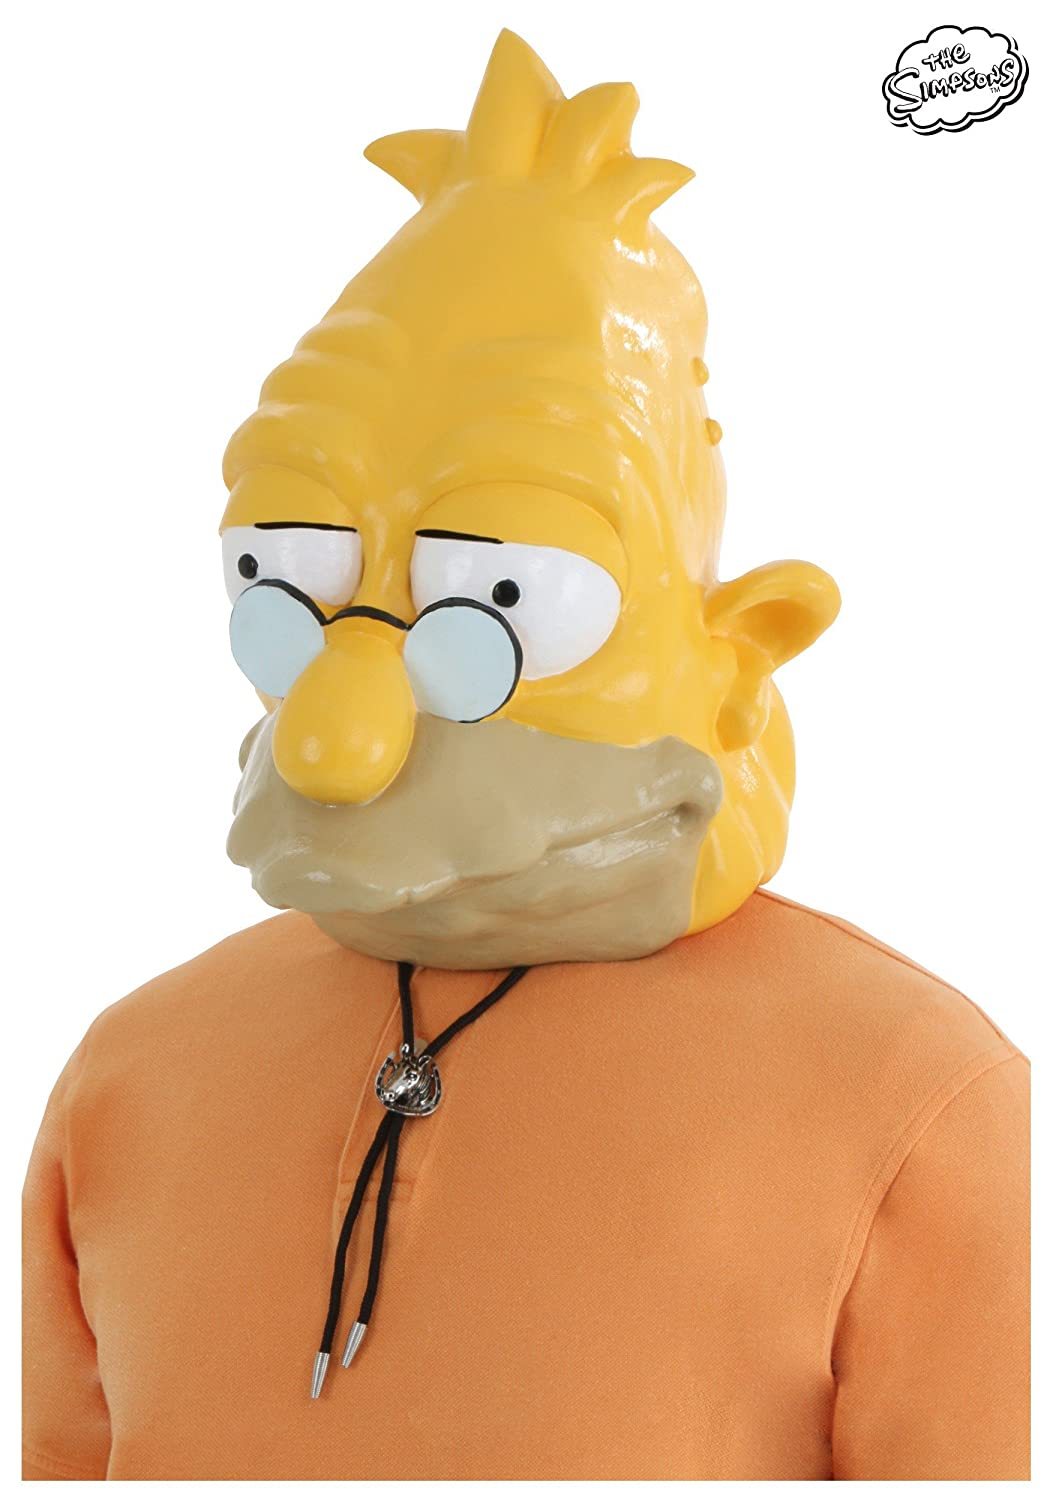 Grandpa Simpson Mask Standardhttps://amzn.to/2C6nJJd